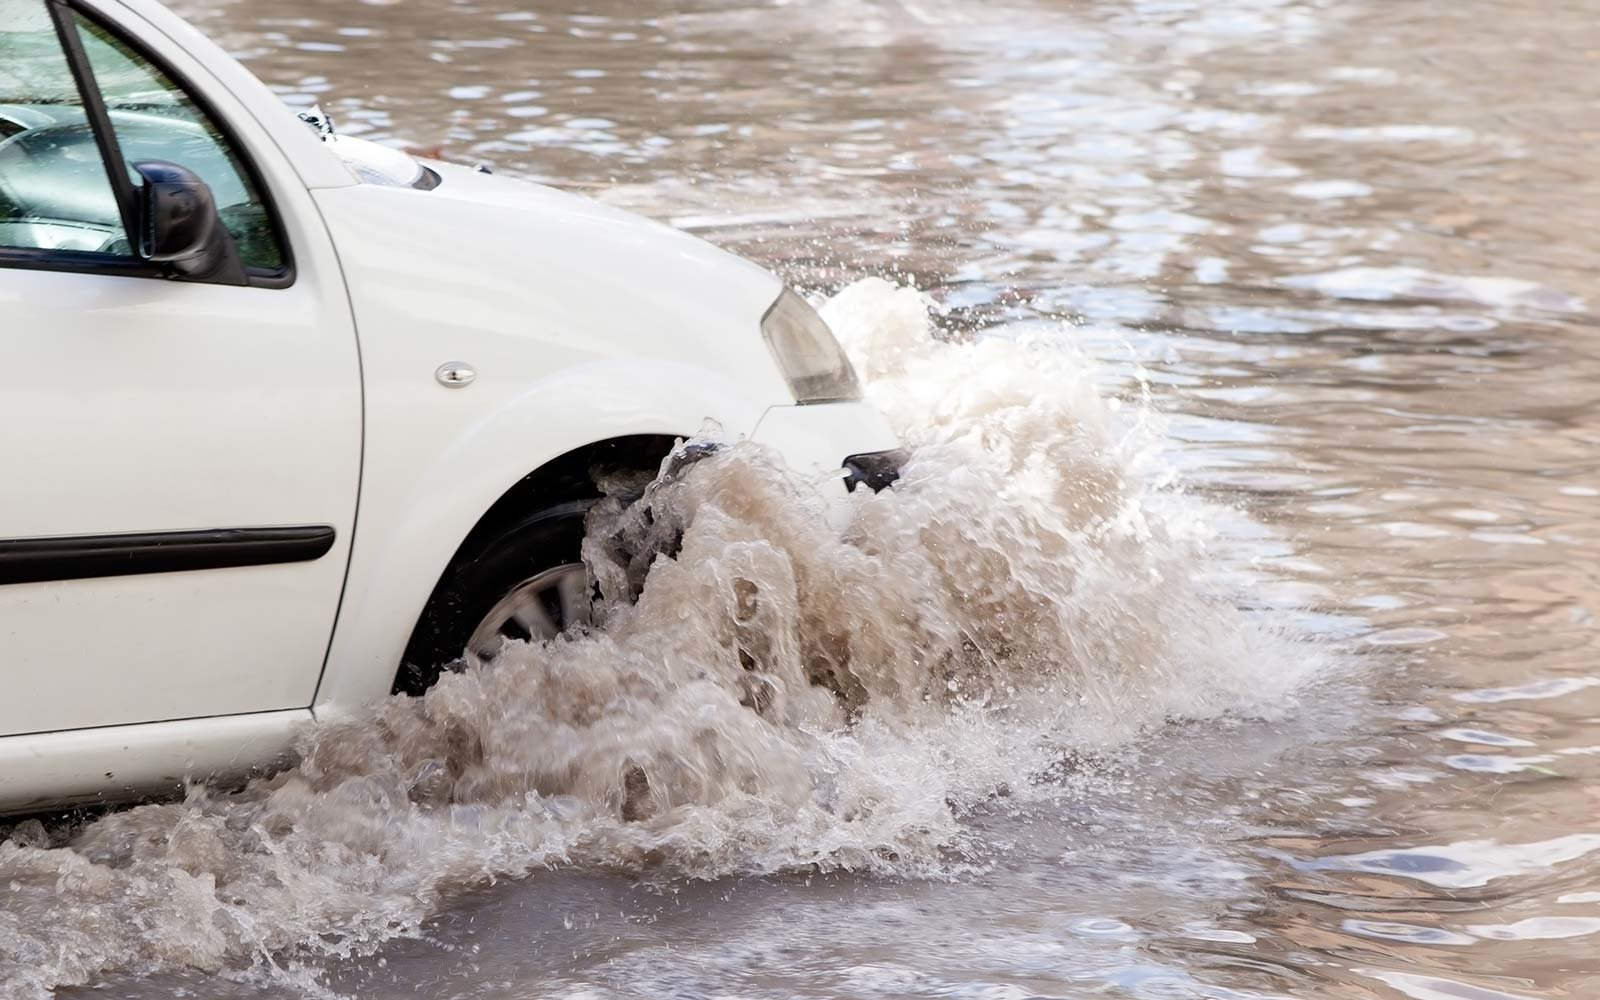 Man drives into river because GPS says to